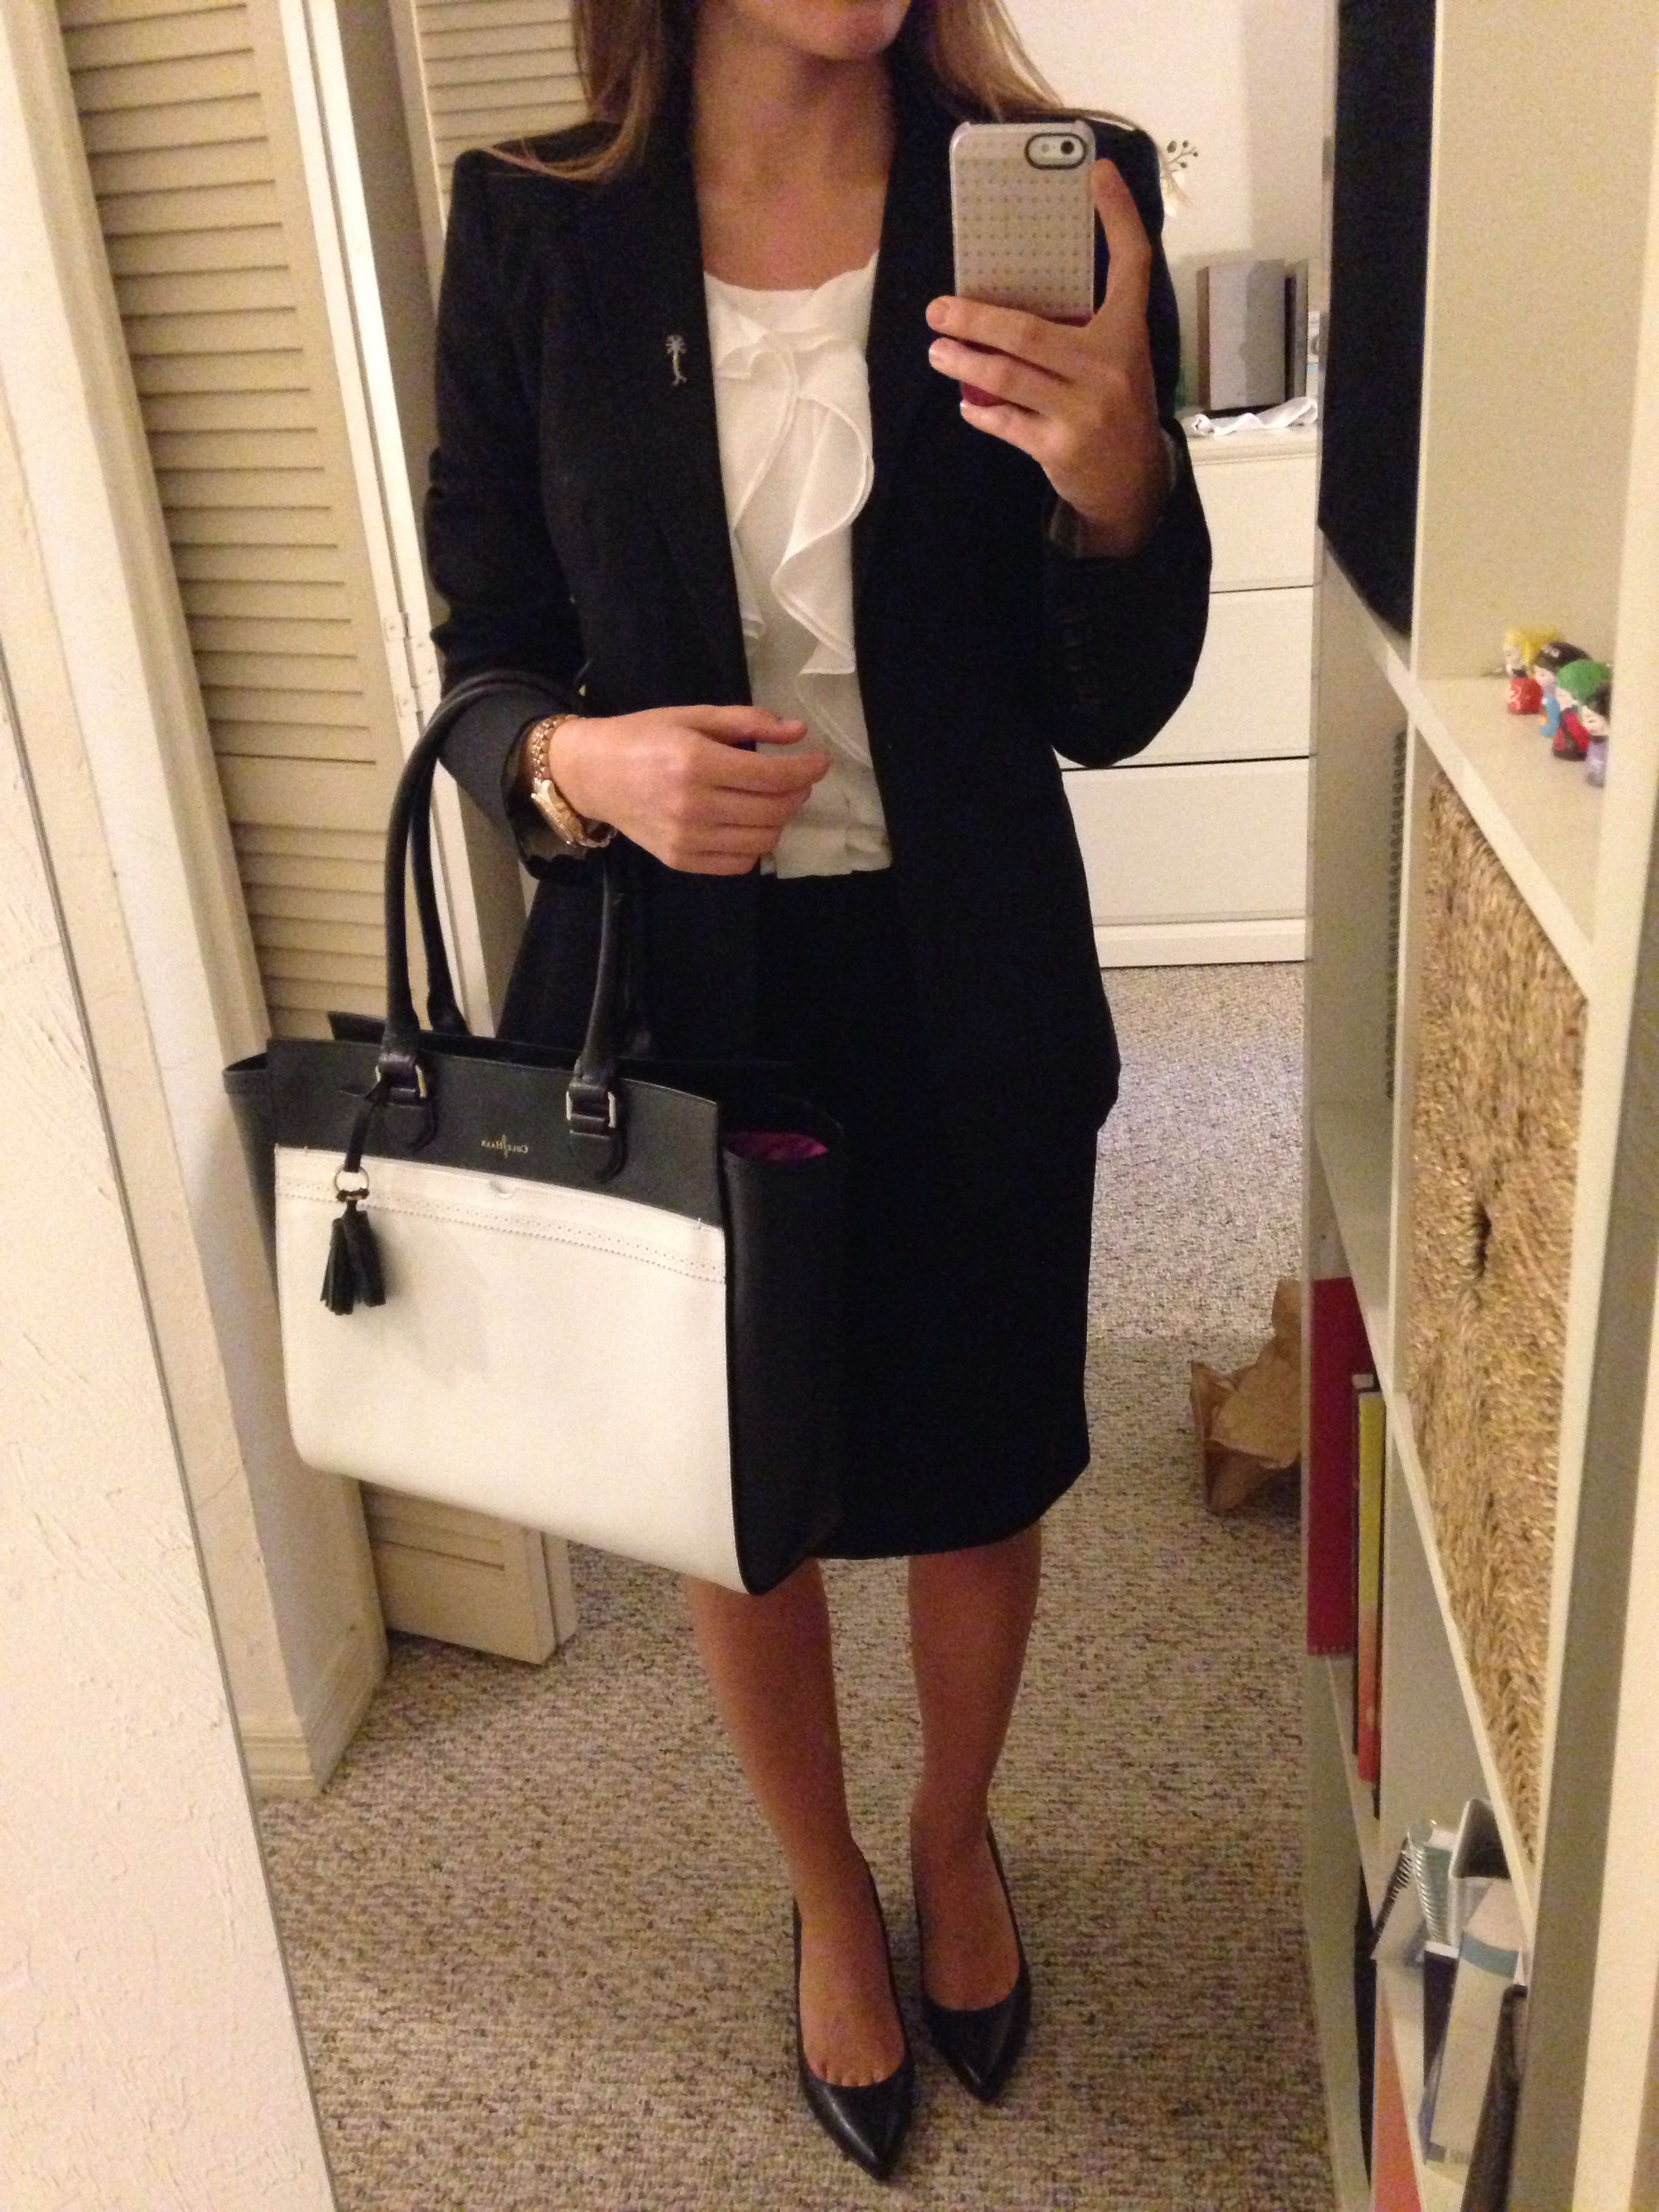 0a8f6880a Interview outfit - Express black blazer and pencil skirt, H&M white blouse,  Cole Haan pointy low pumps, Cole Haan tote, MK watch